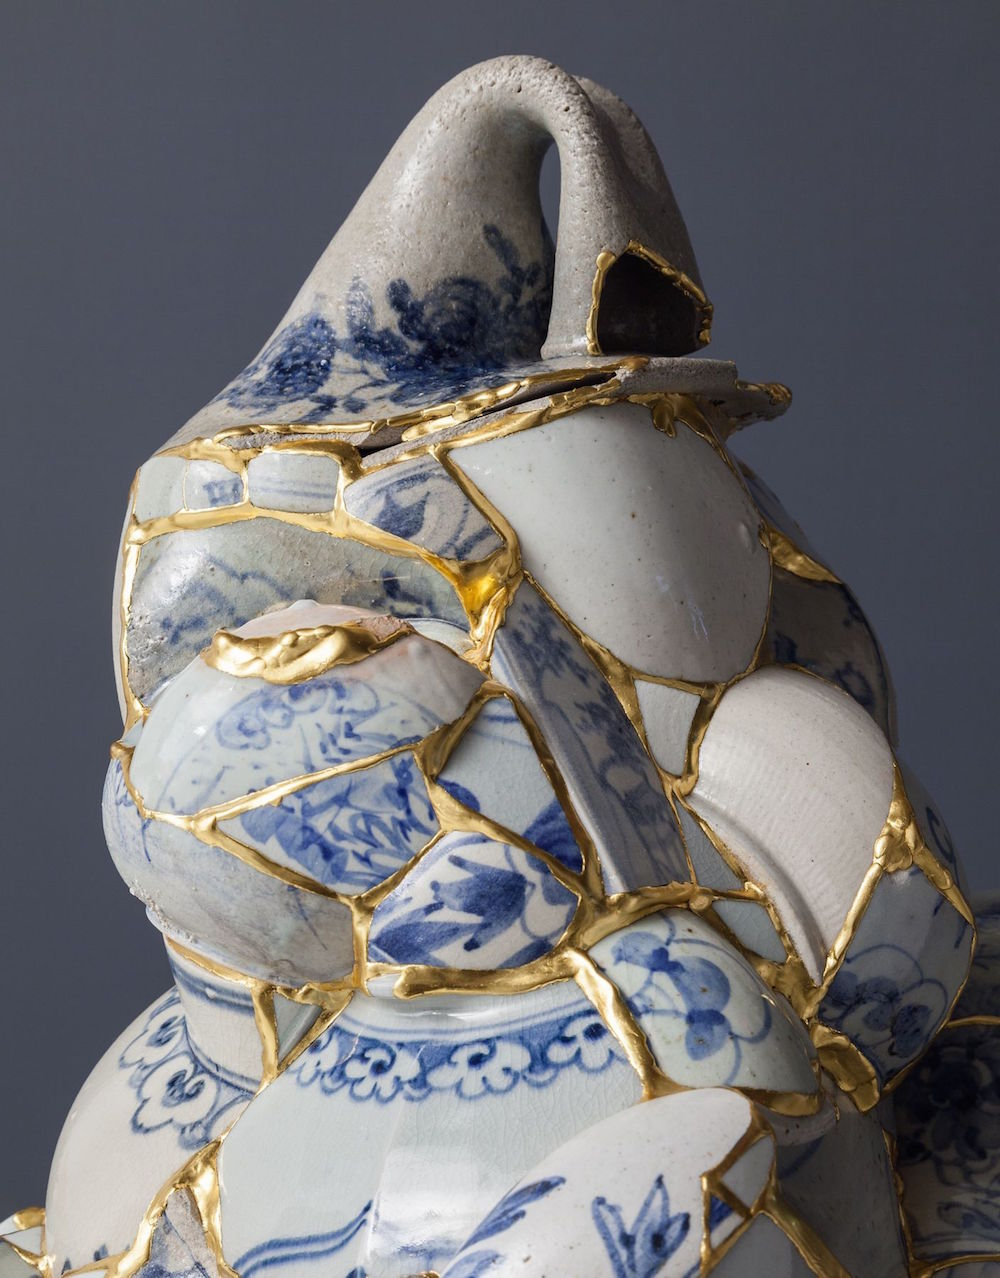 Translated Vase (TVW8), 2013 (detail), ceramic shards, epoxy, 24k gold leaf, 52 x 28 1/2 x 27 1/2 inches, Collection of the Philadelphia Museum of Art